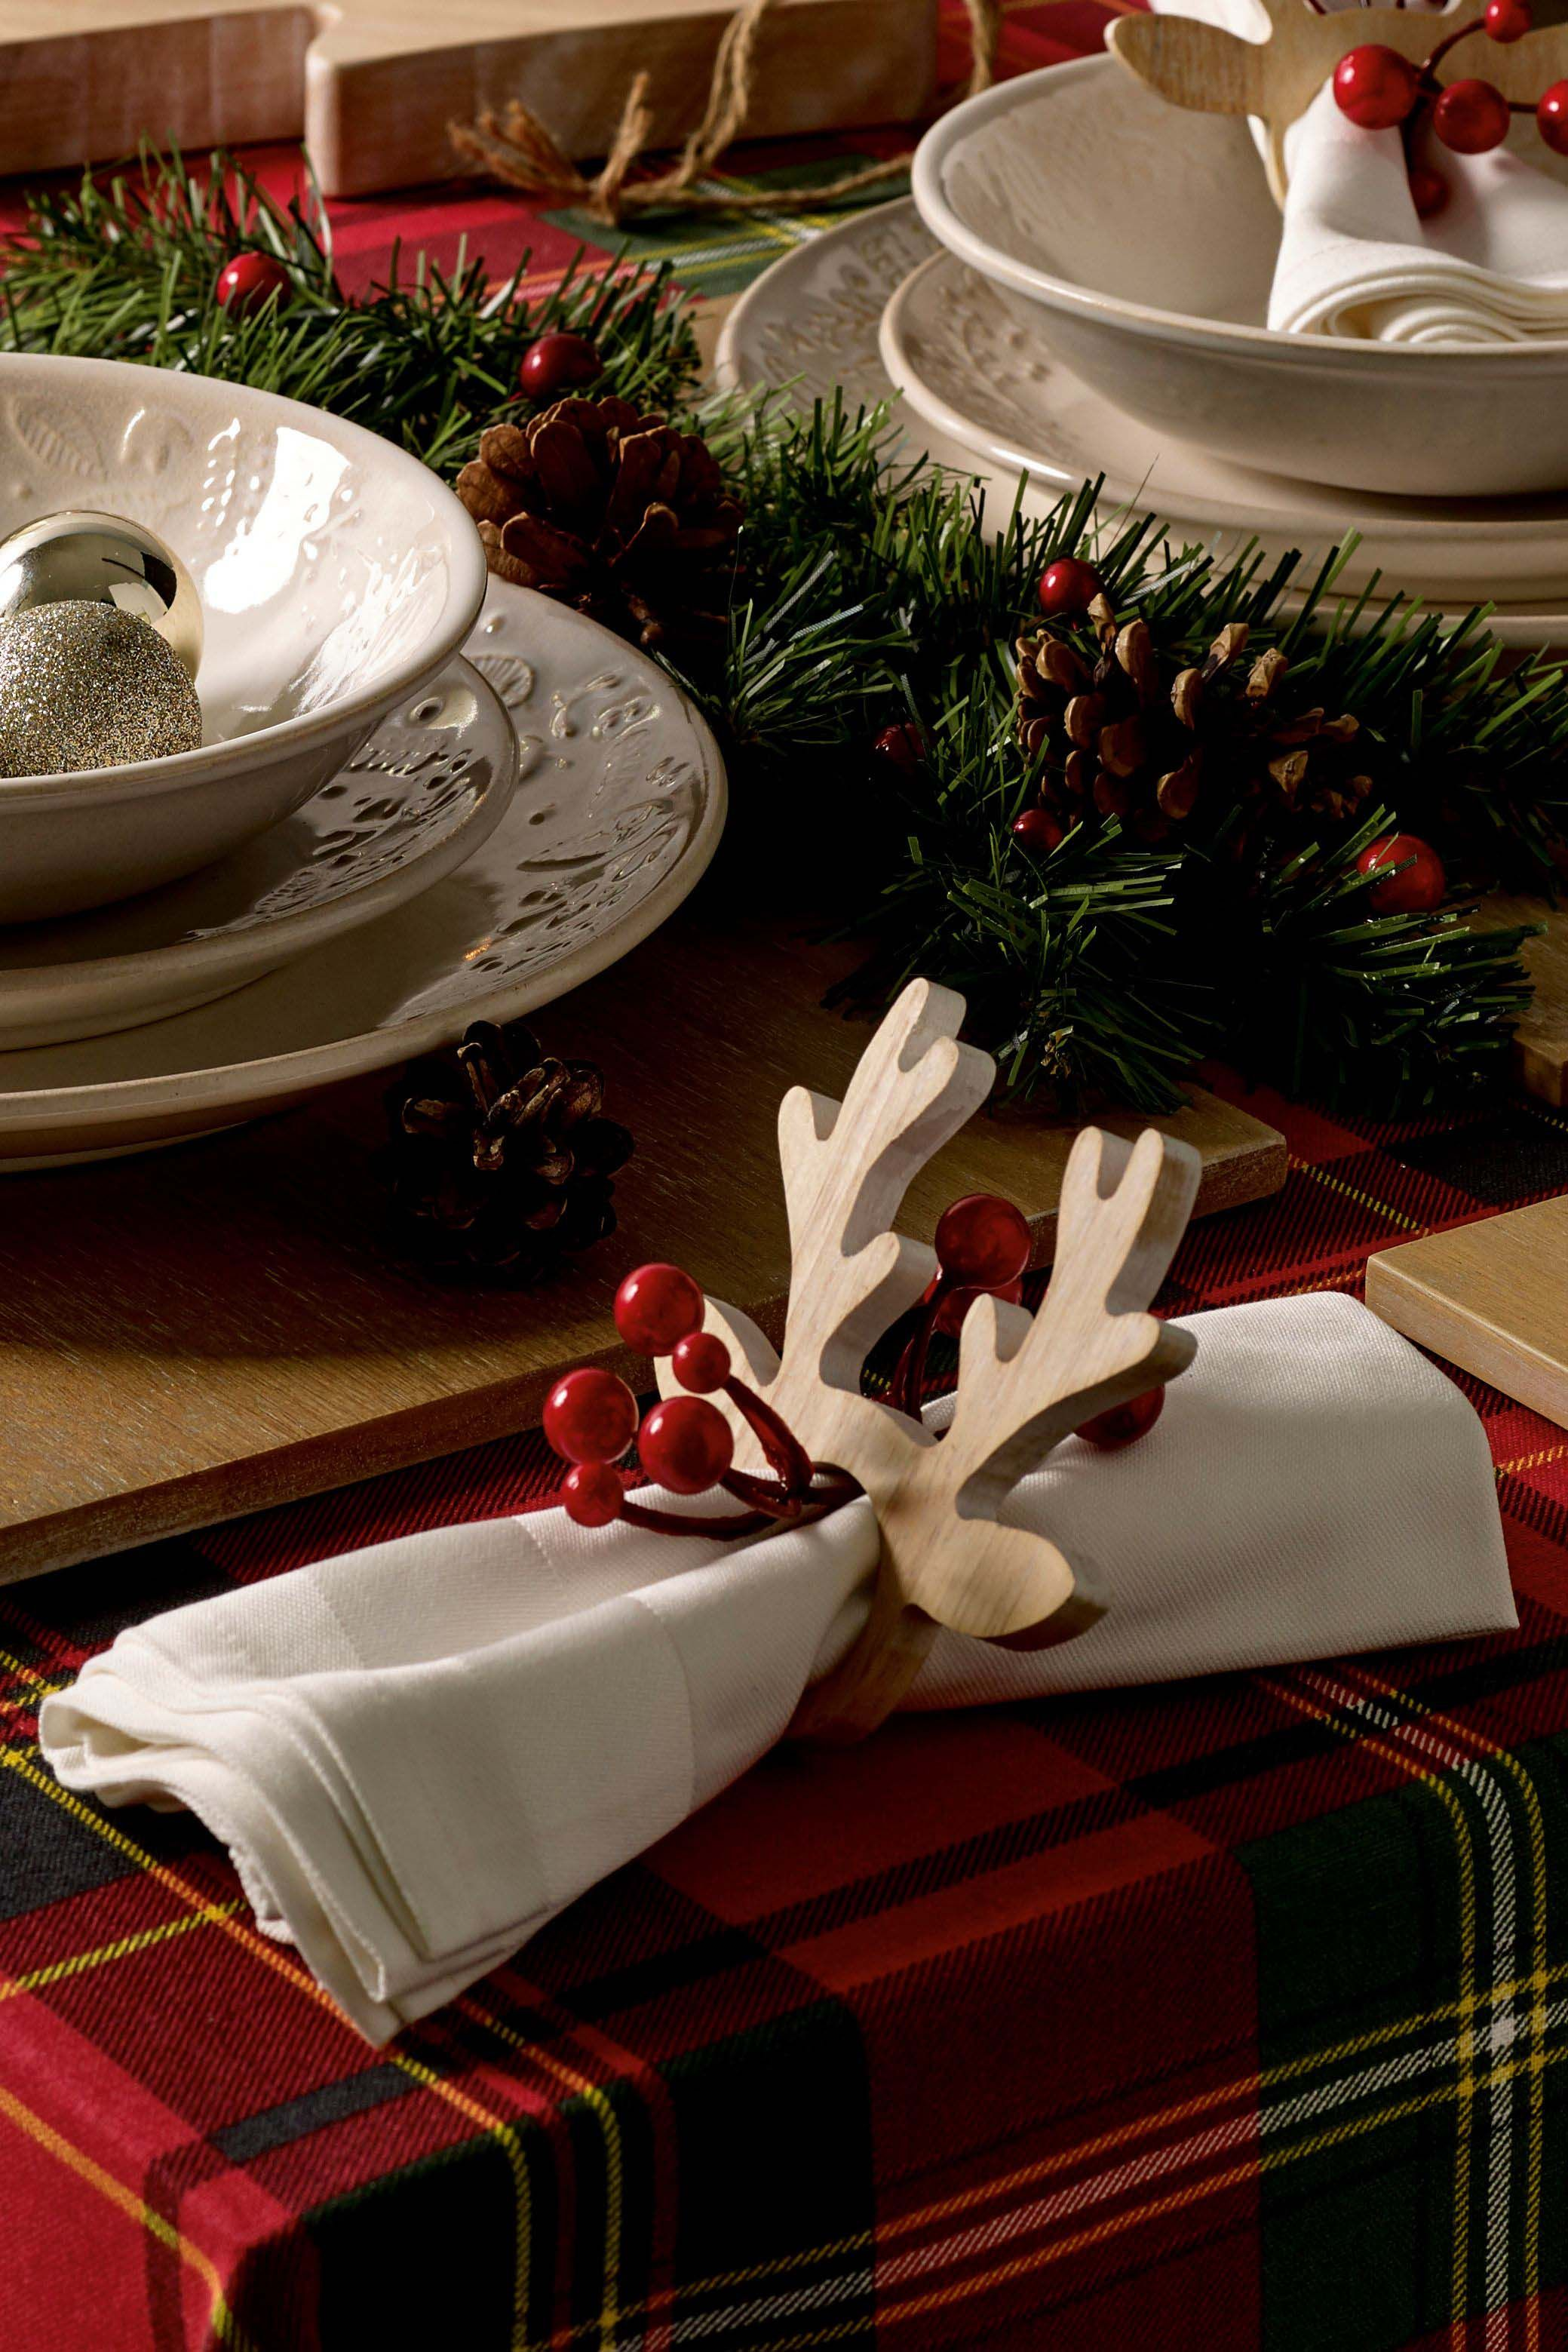 Next Set Of 2 Stag Napkin Rings Natural Christmas Table Settings Christmas Tablescapes Christmas Table